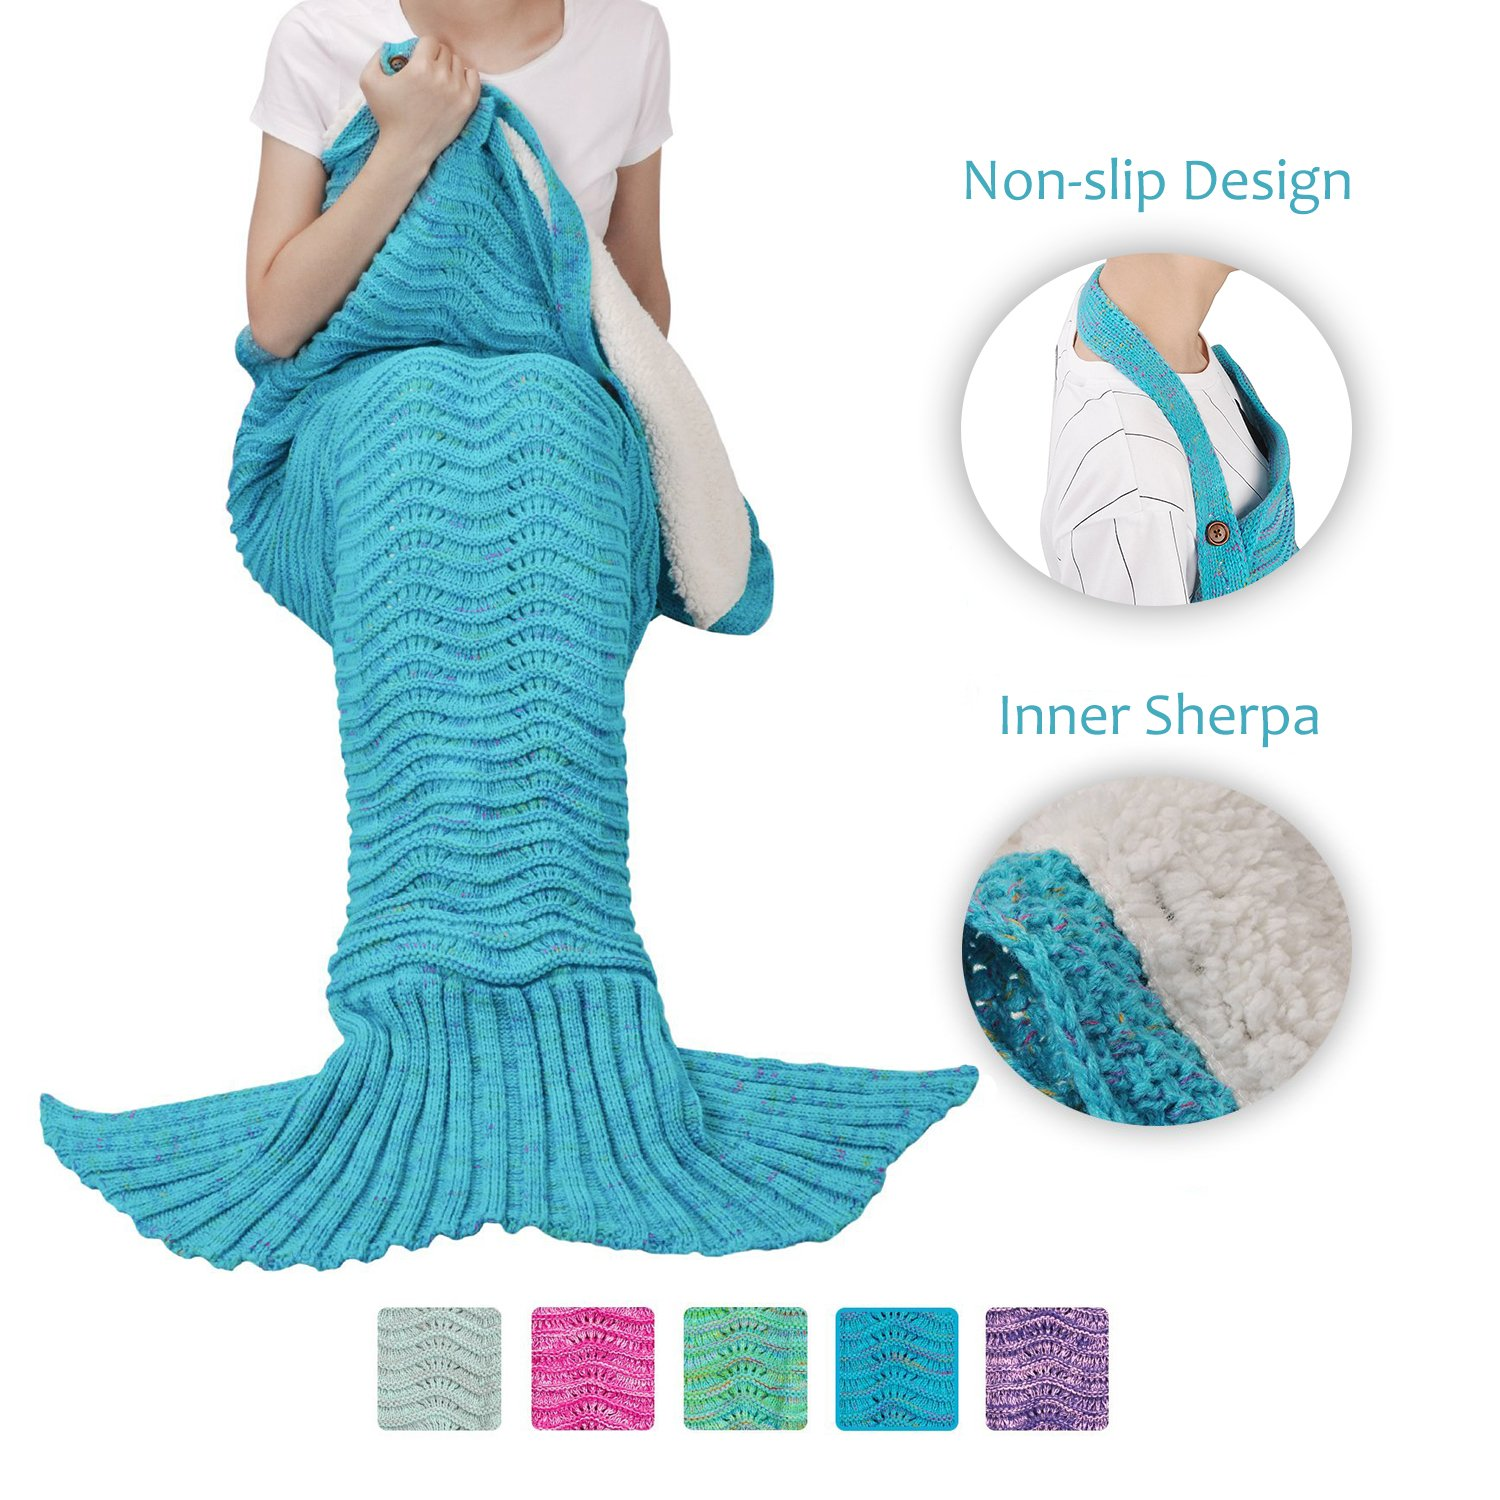 Adults Mermaid Tail Blanket Sherpa for Teens Girls Womens, Super Warm Crochet Knitted Anti-slip Mermaid Blanket Wave Pattern | Gift Package Included, Blue